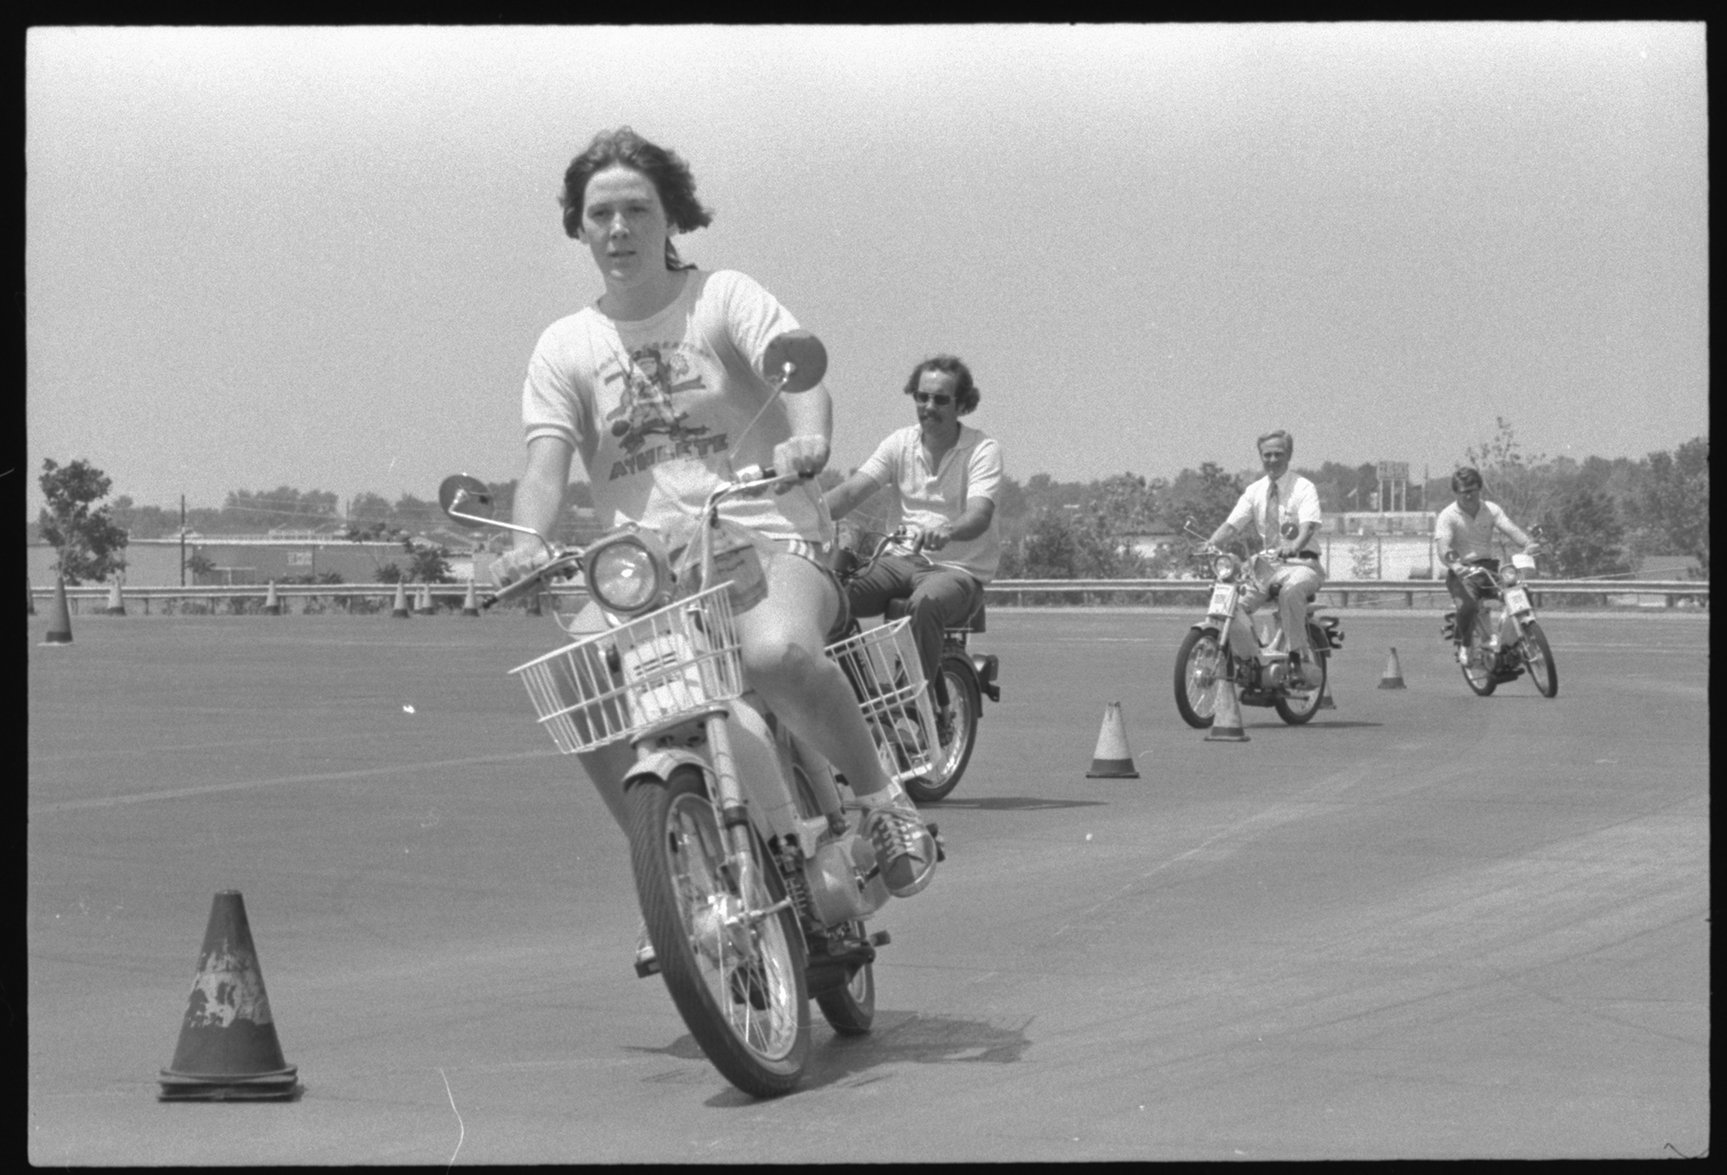 A moped clinic organized by the Traffic Safety Institute on the Leslie Leach Driving Range, 1978. EKU Negative Collection